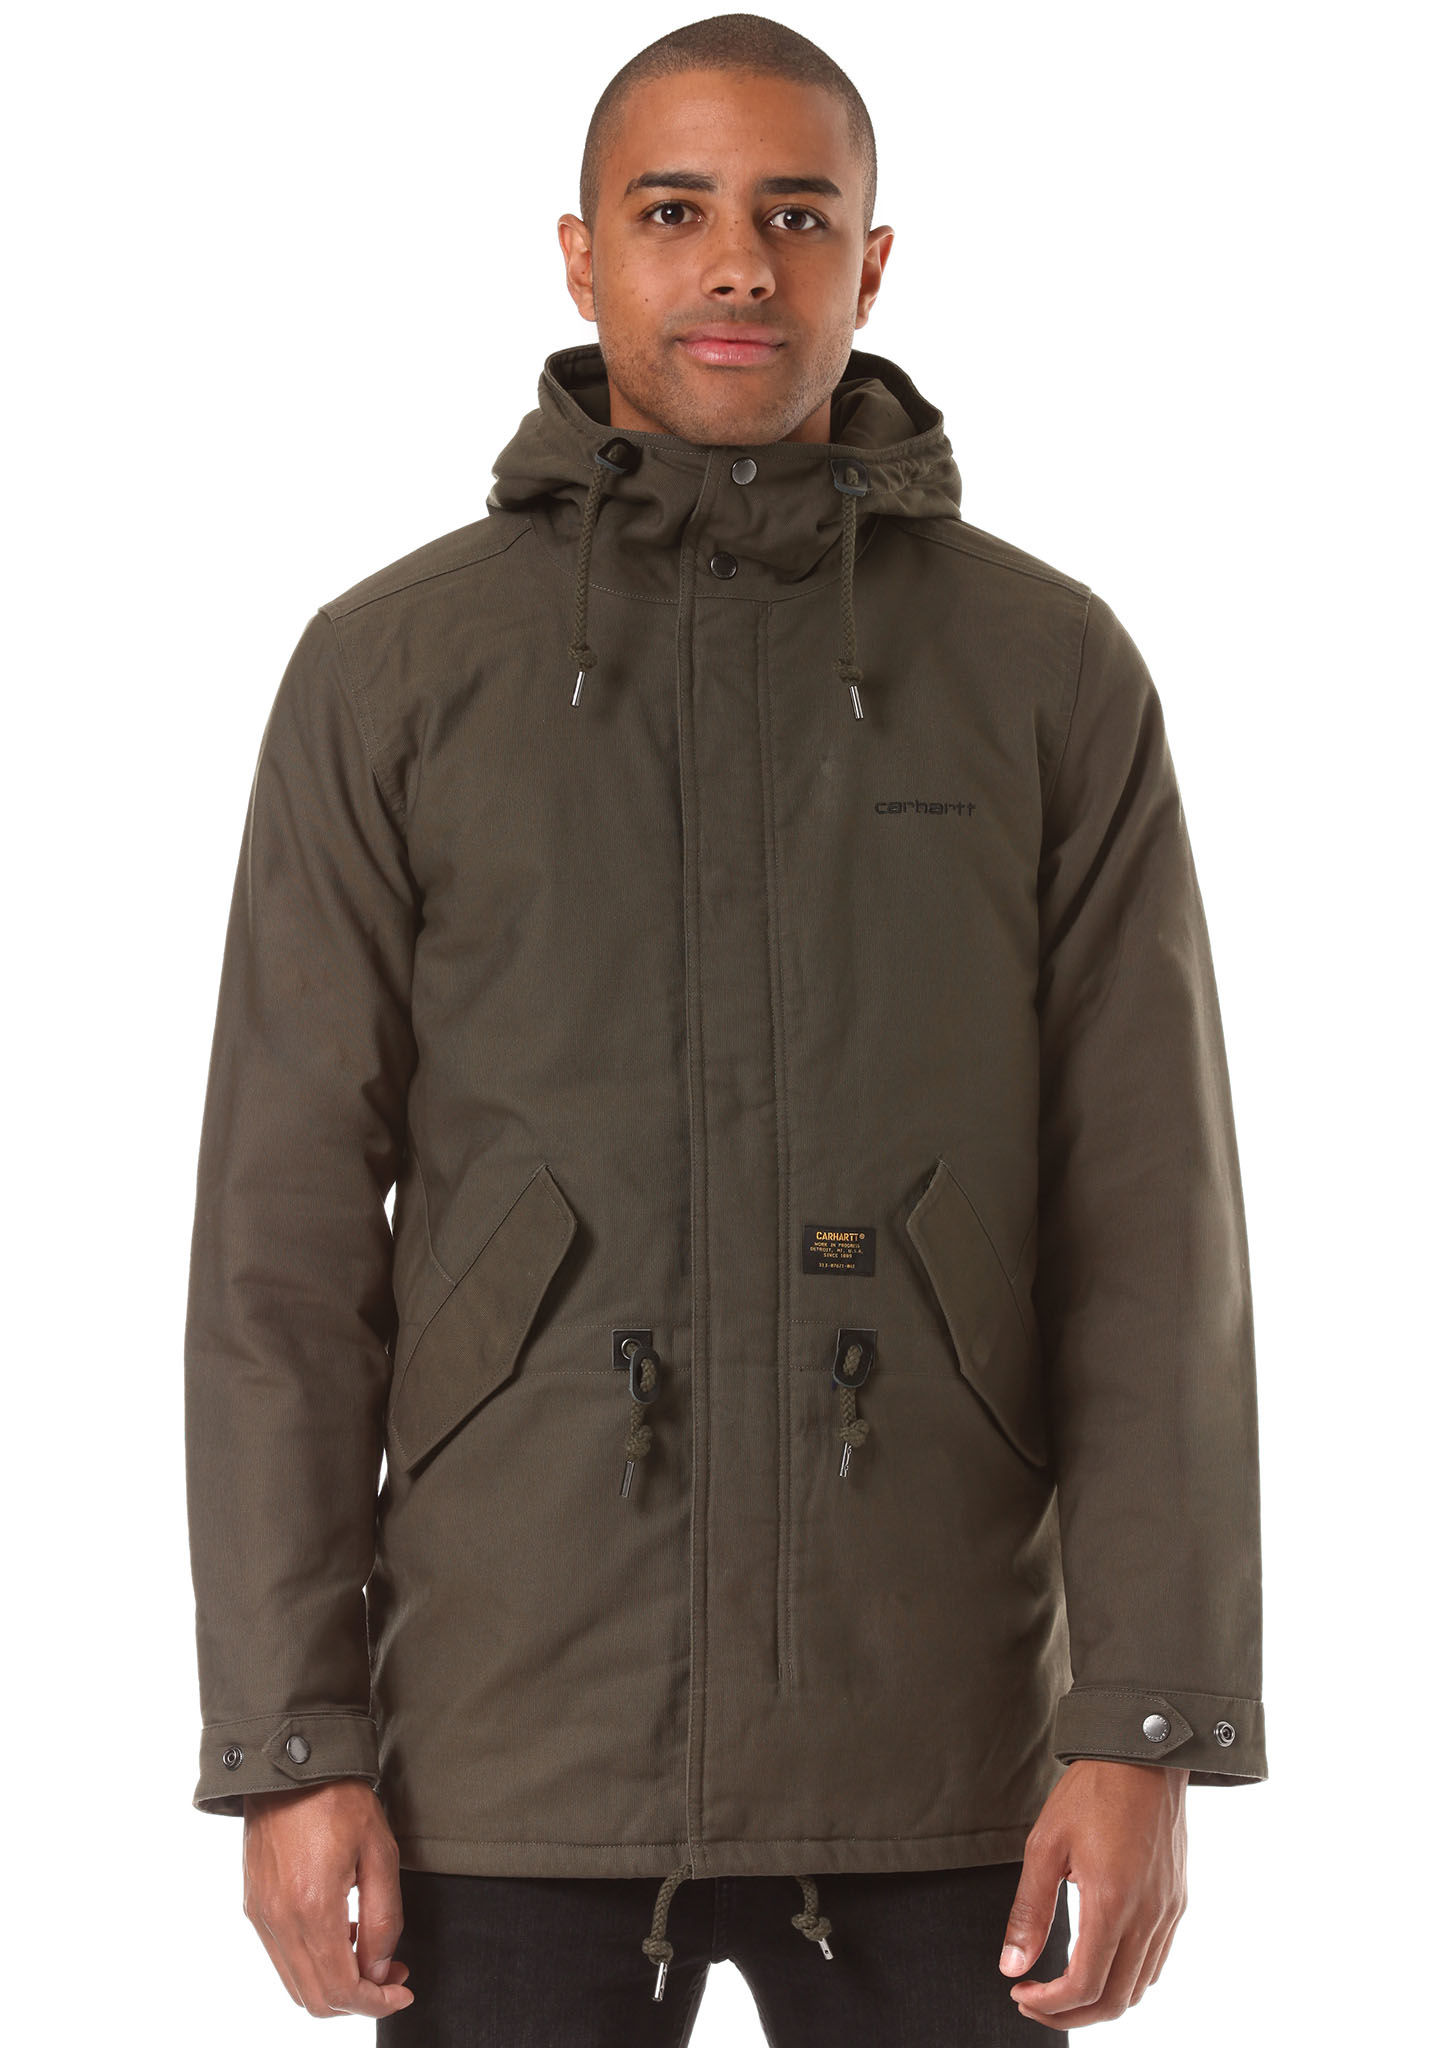 brand new 536e1 ee0d1 carhartt WIP Clash - Jacket for Men - Brown